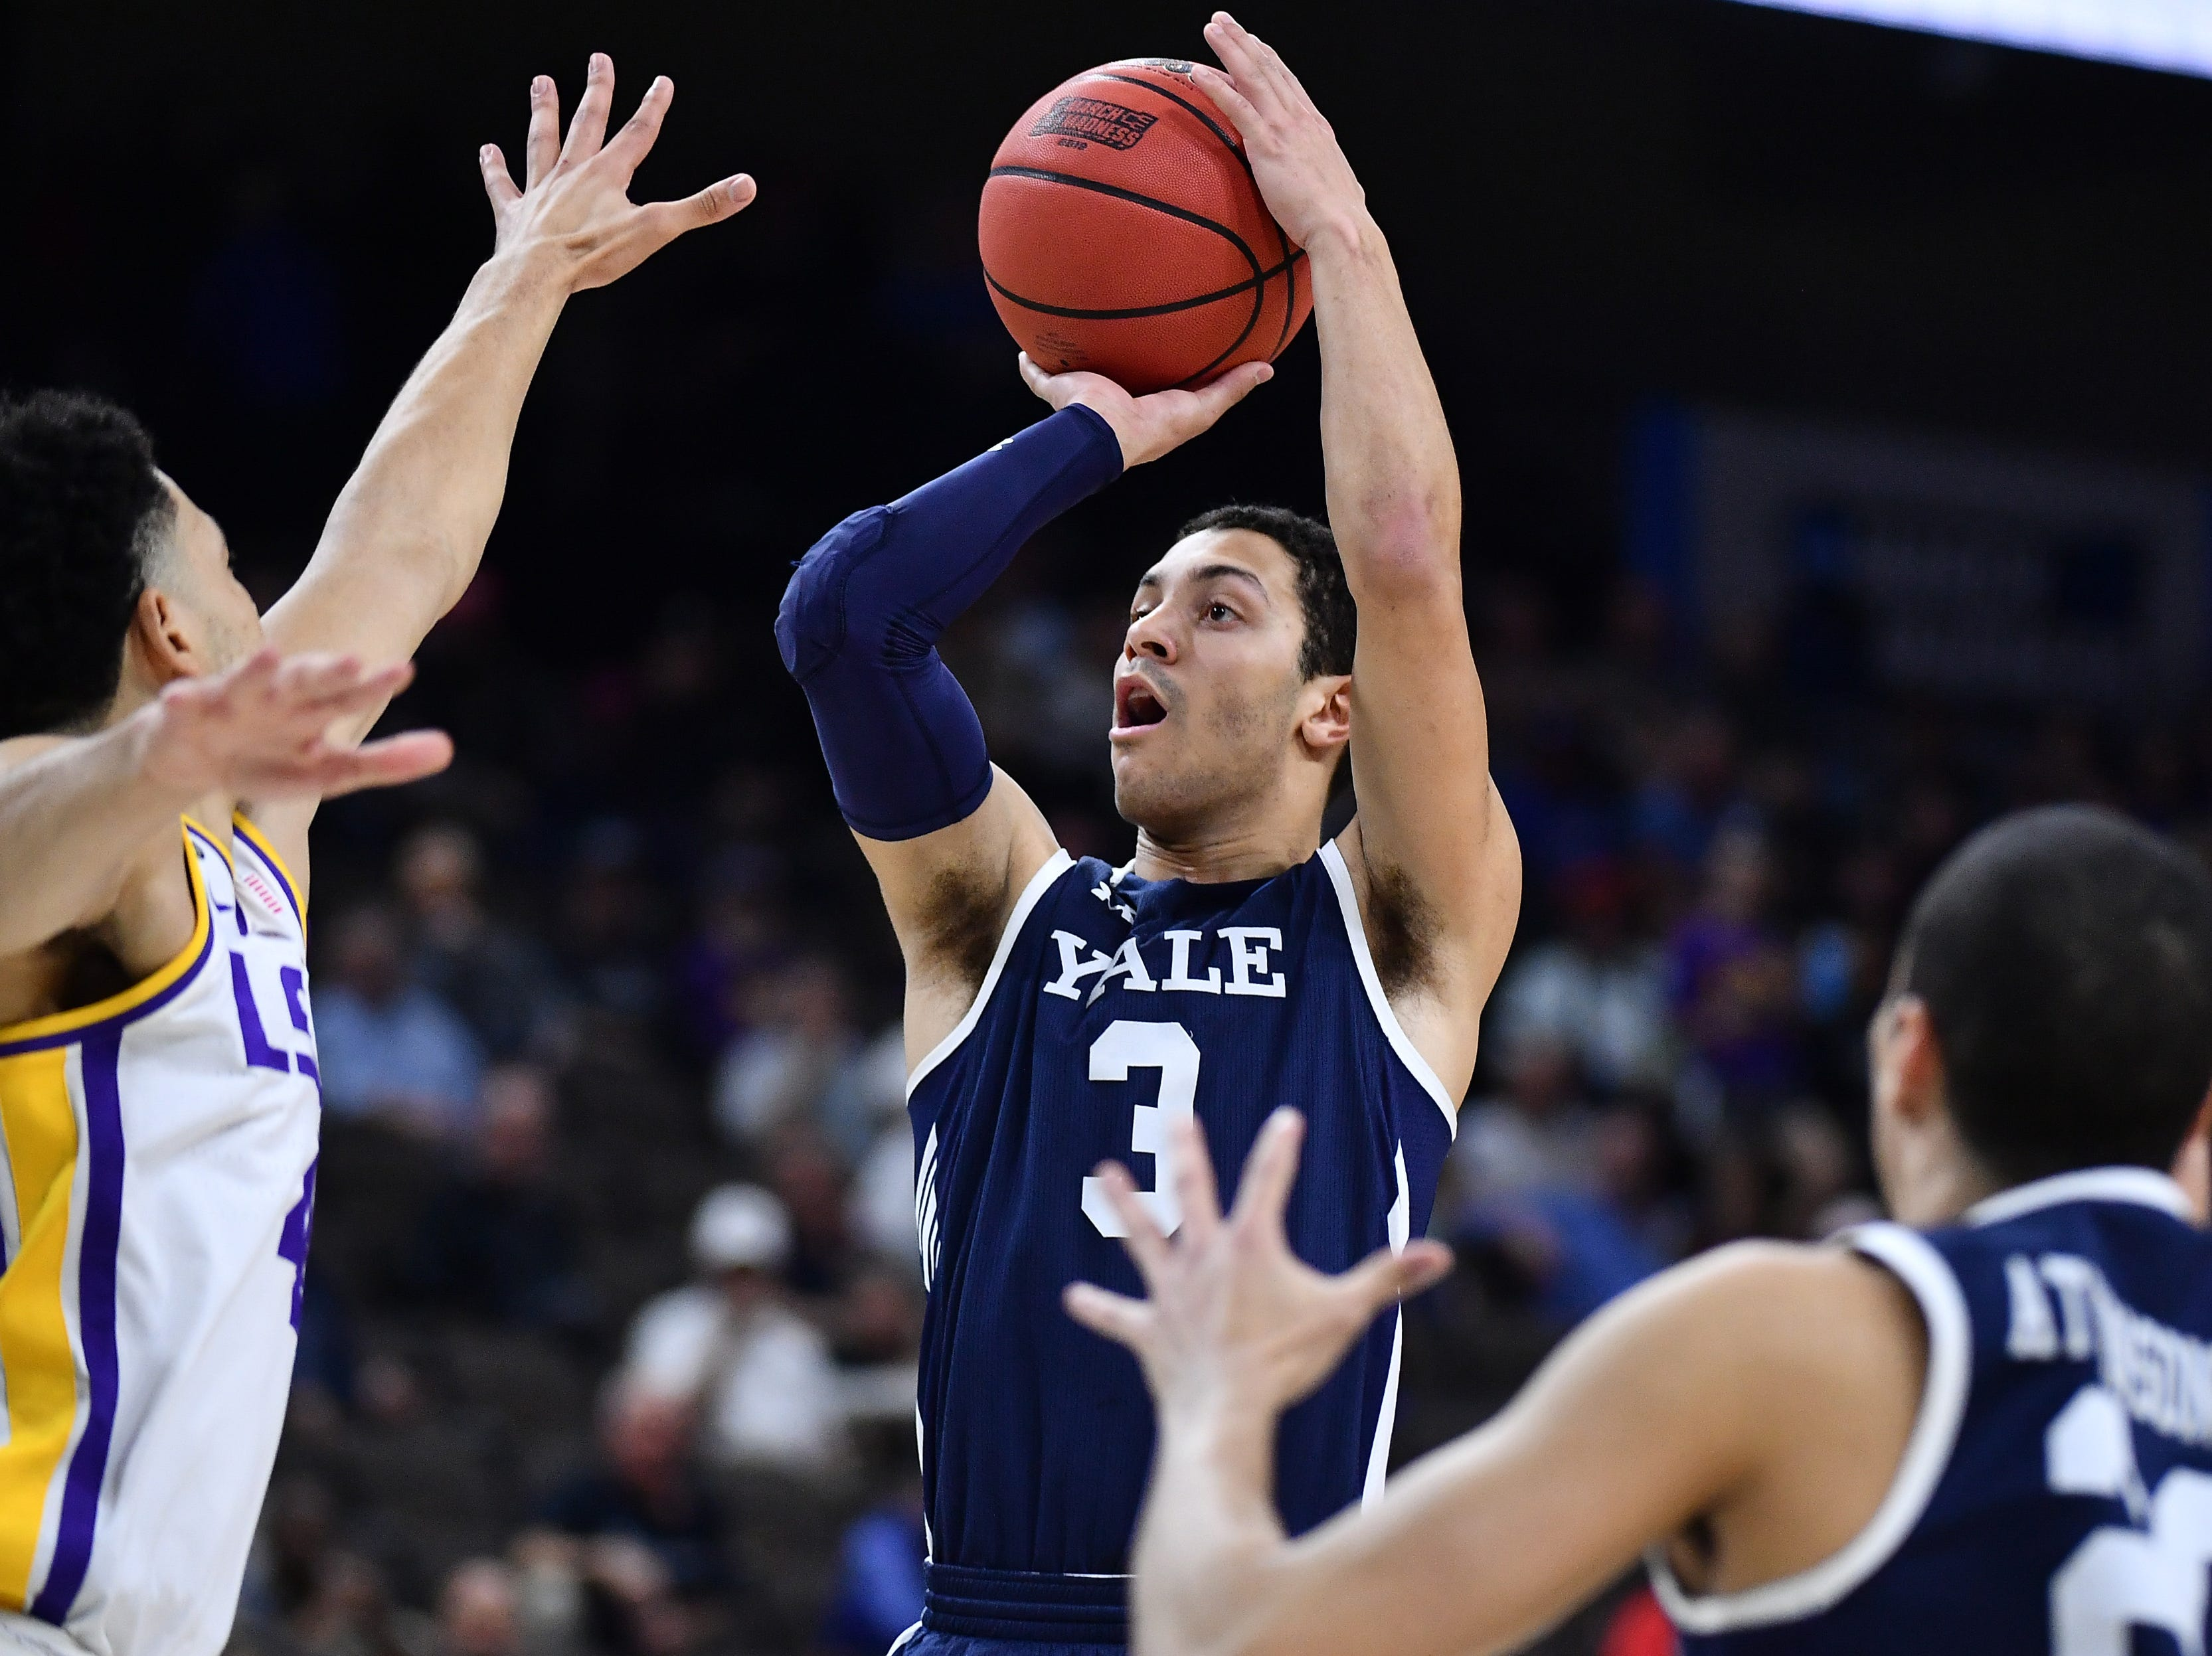 Mar 21, 2019; Jacksonville, FL, USA; Yale Bulldogs guard Alex Copeland (3) shoots against LSU Tigers guard Skylar Mays (left) during the first half in the first round of the 2019 NCAA Tournament at Jacksonville Veterans Memorial Arena. Mandatory Credit: John David Mercer-USA TODAY Sports